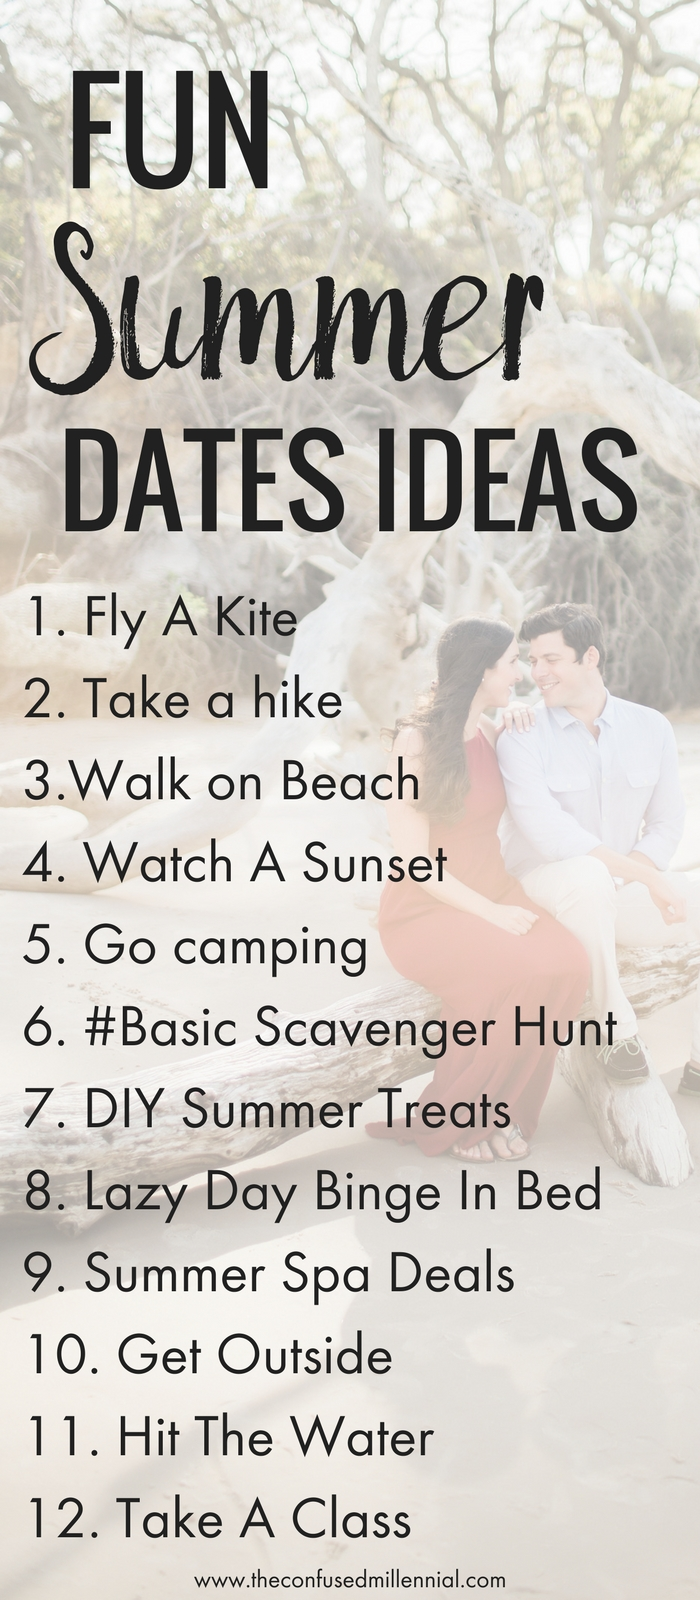 10 Most Recommended Free Date Ideas For Couples 8 unique summer dateideas for any budget couples summer and free 2021